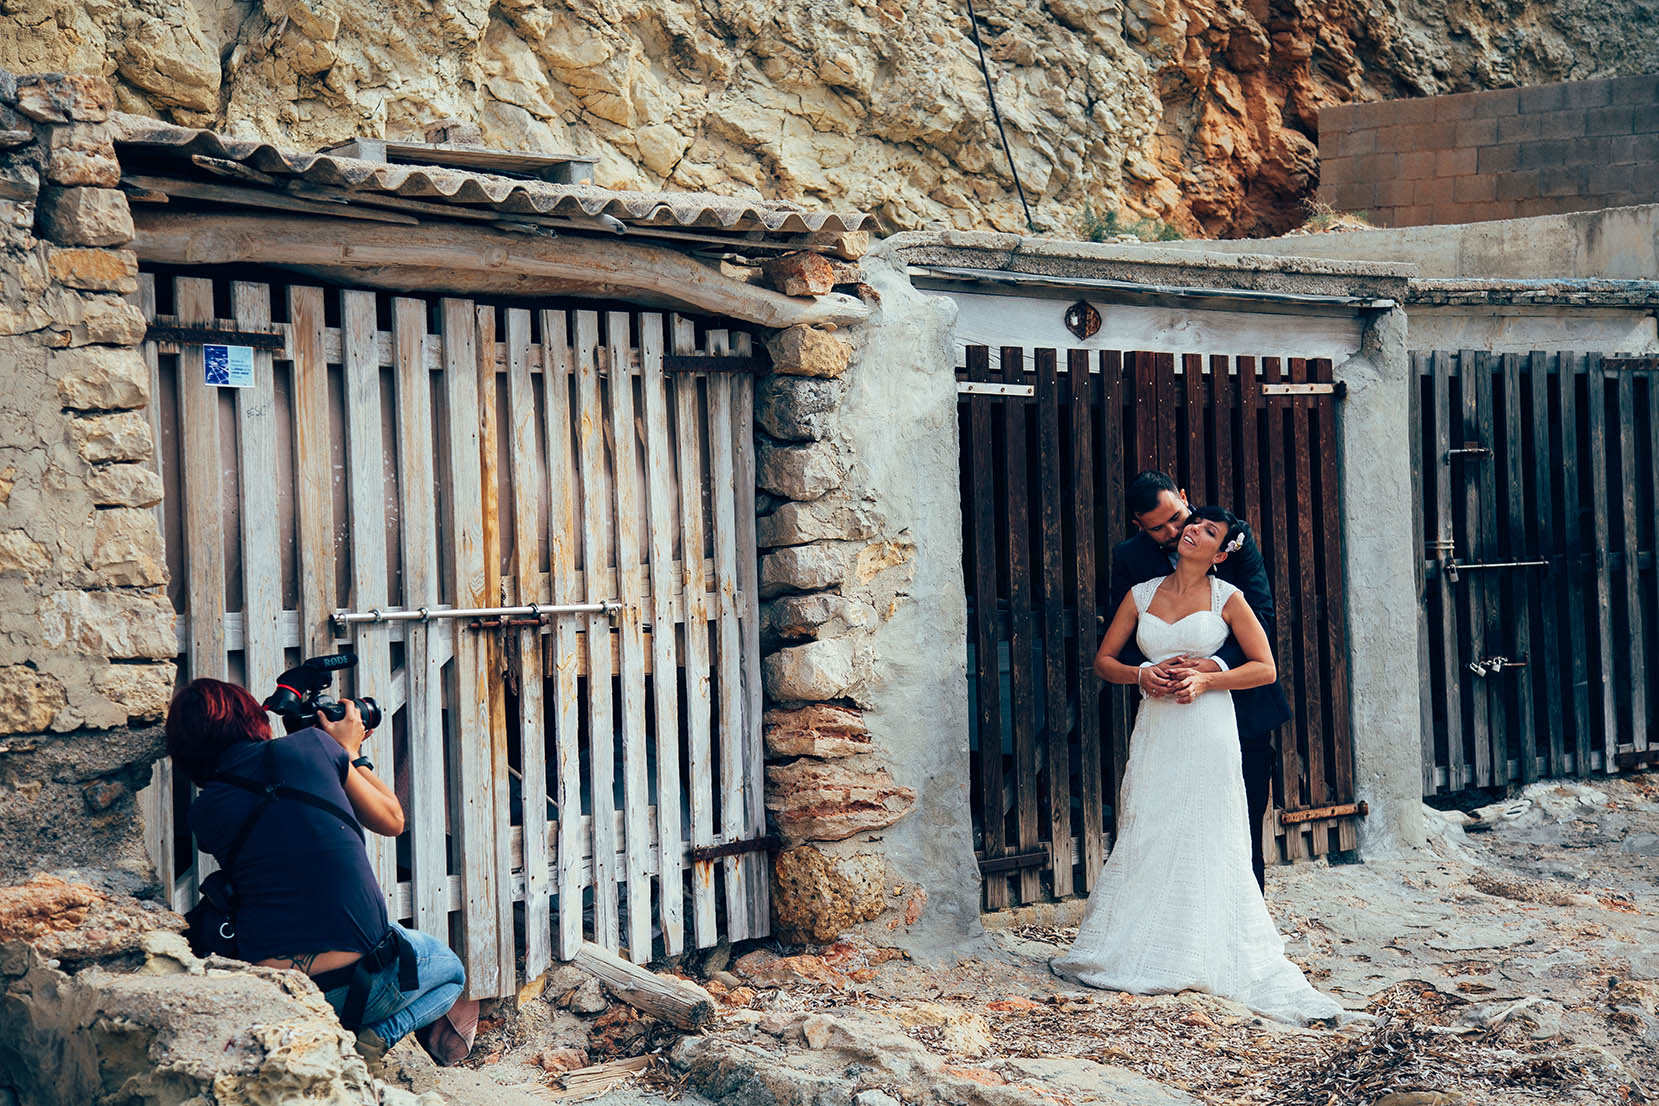 cris besnard  video boda romantica